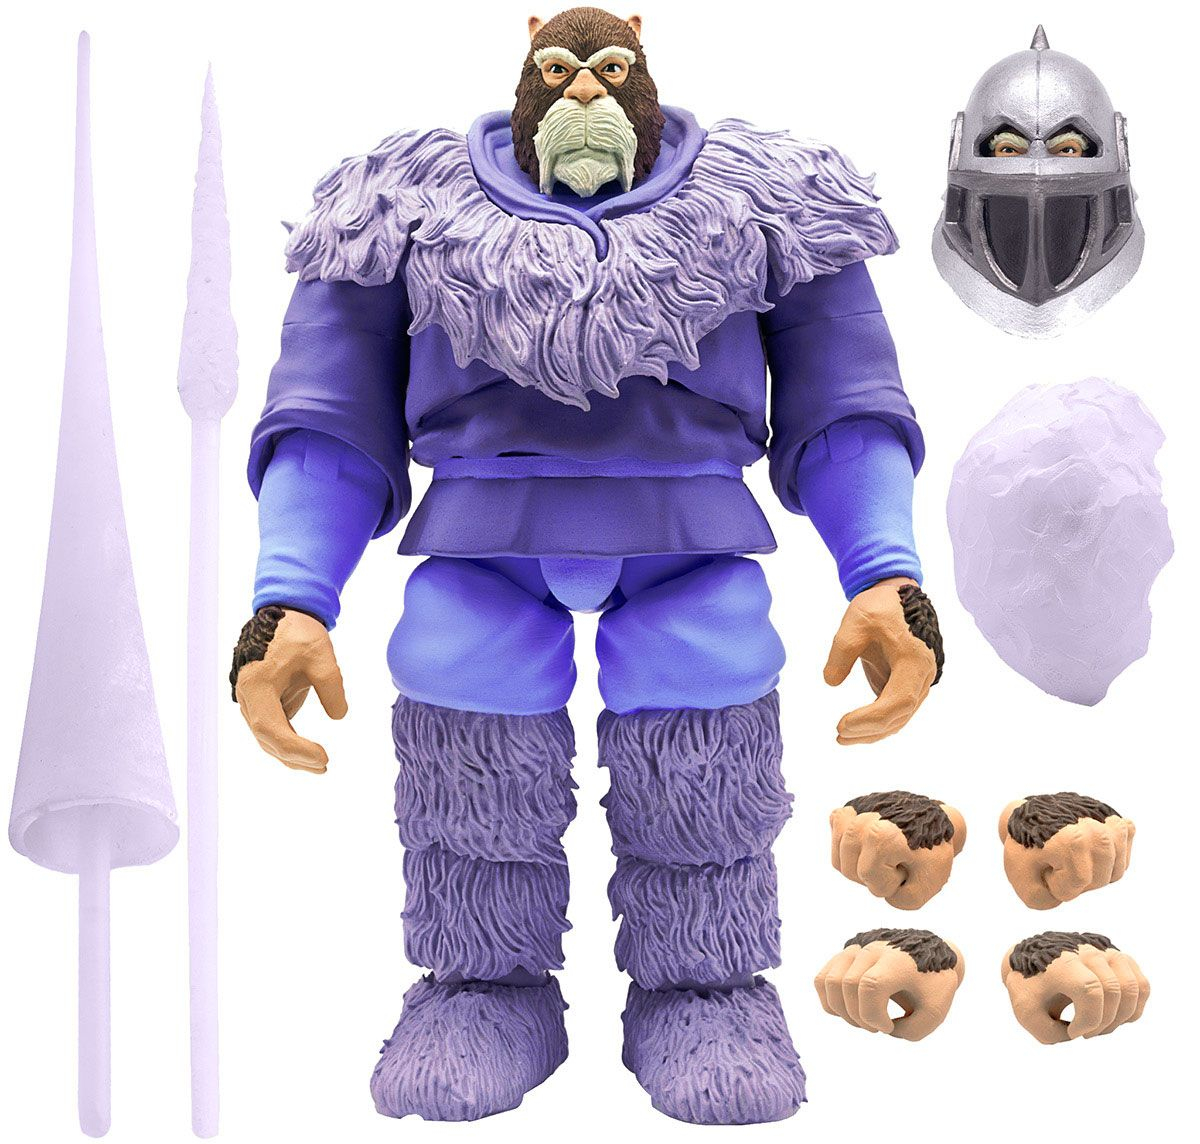 *PREORDER* Thundercats Ultimates Action Figure: SNOWMAN OF HOOK MOUNTAIN by Super7